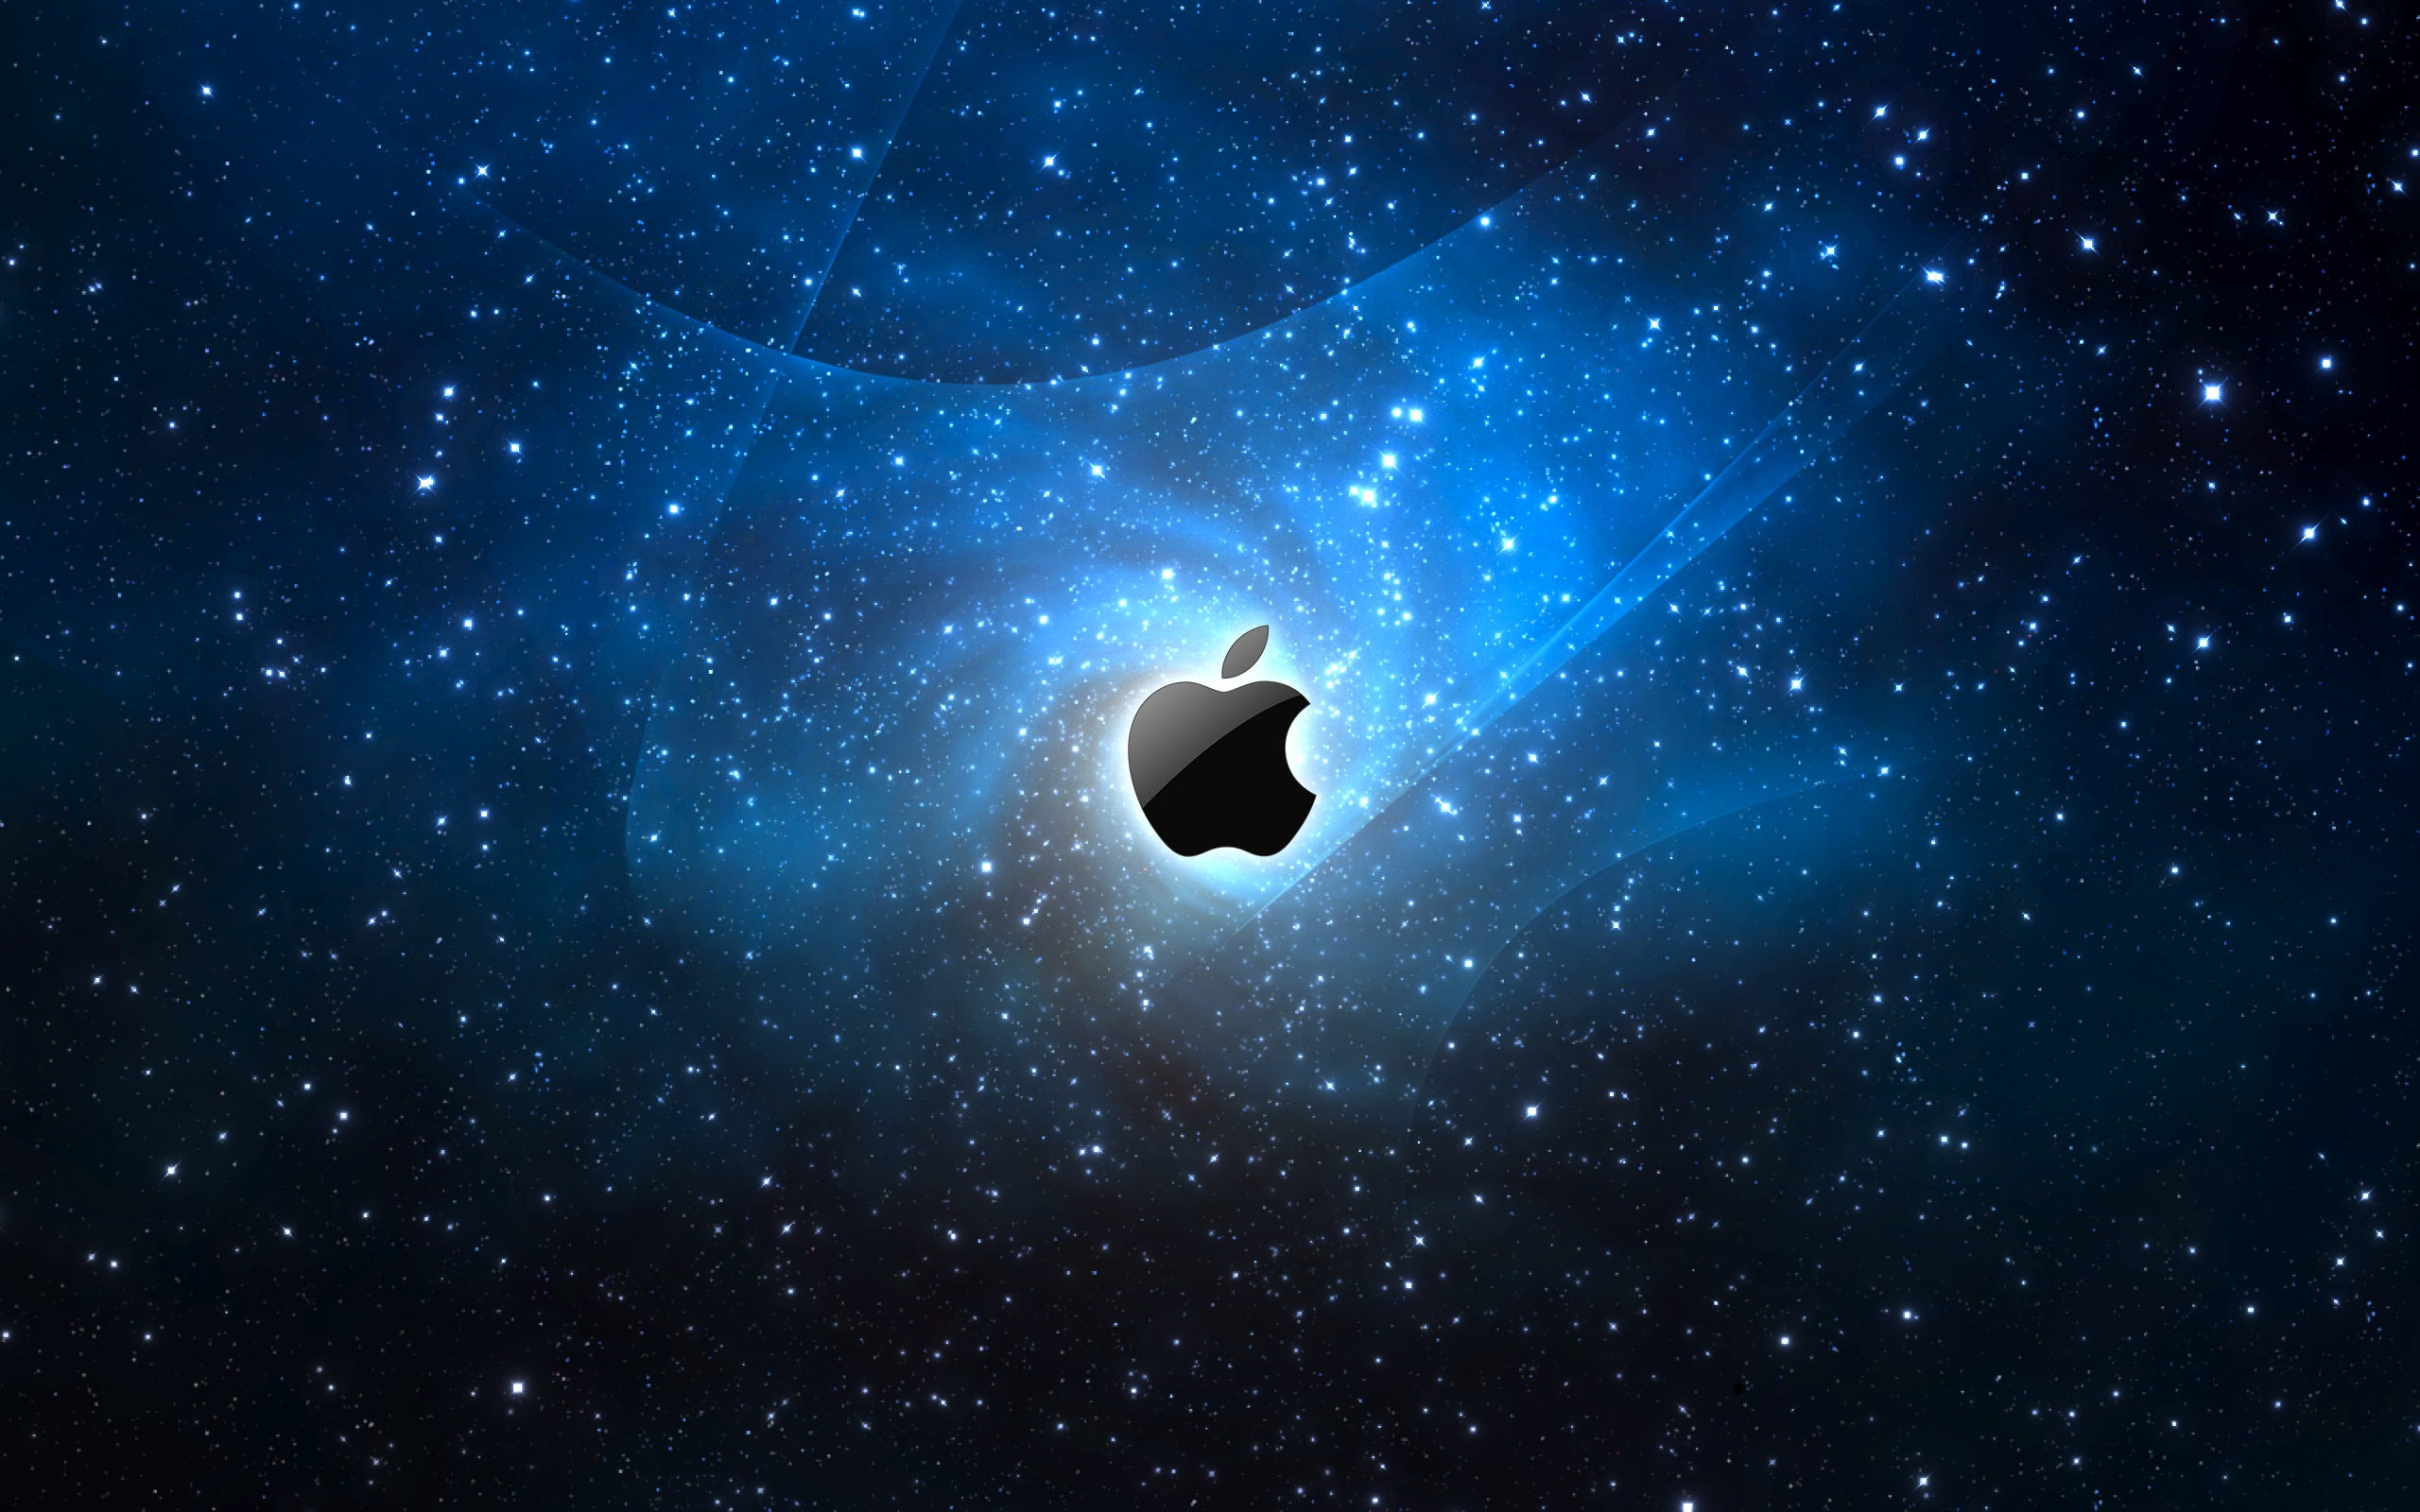 Apple Galaxy Wallpapers HD Wallpapers 2560x1600